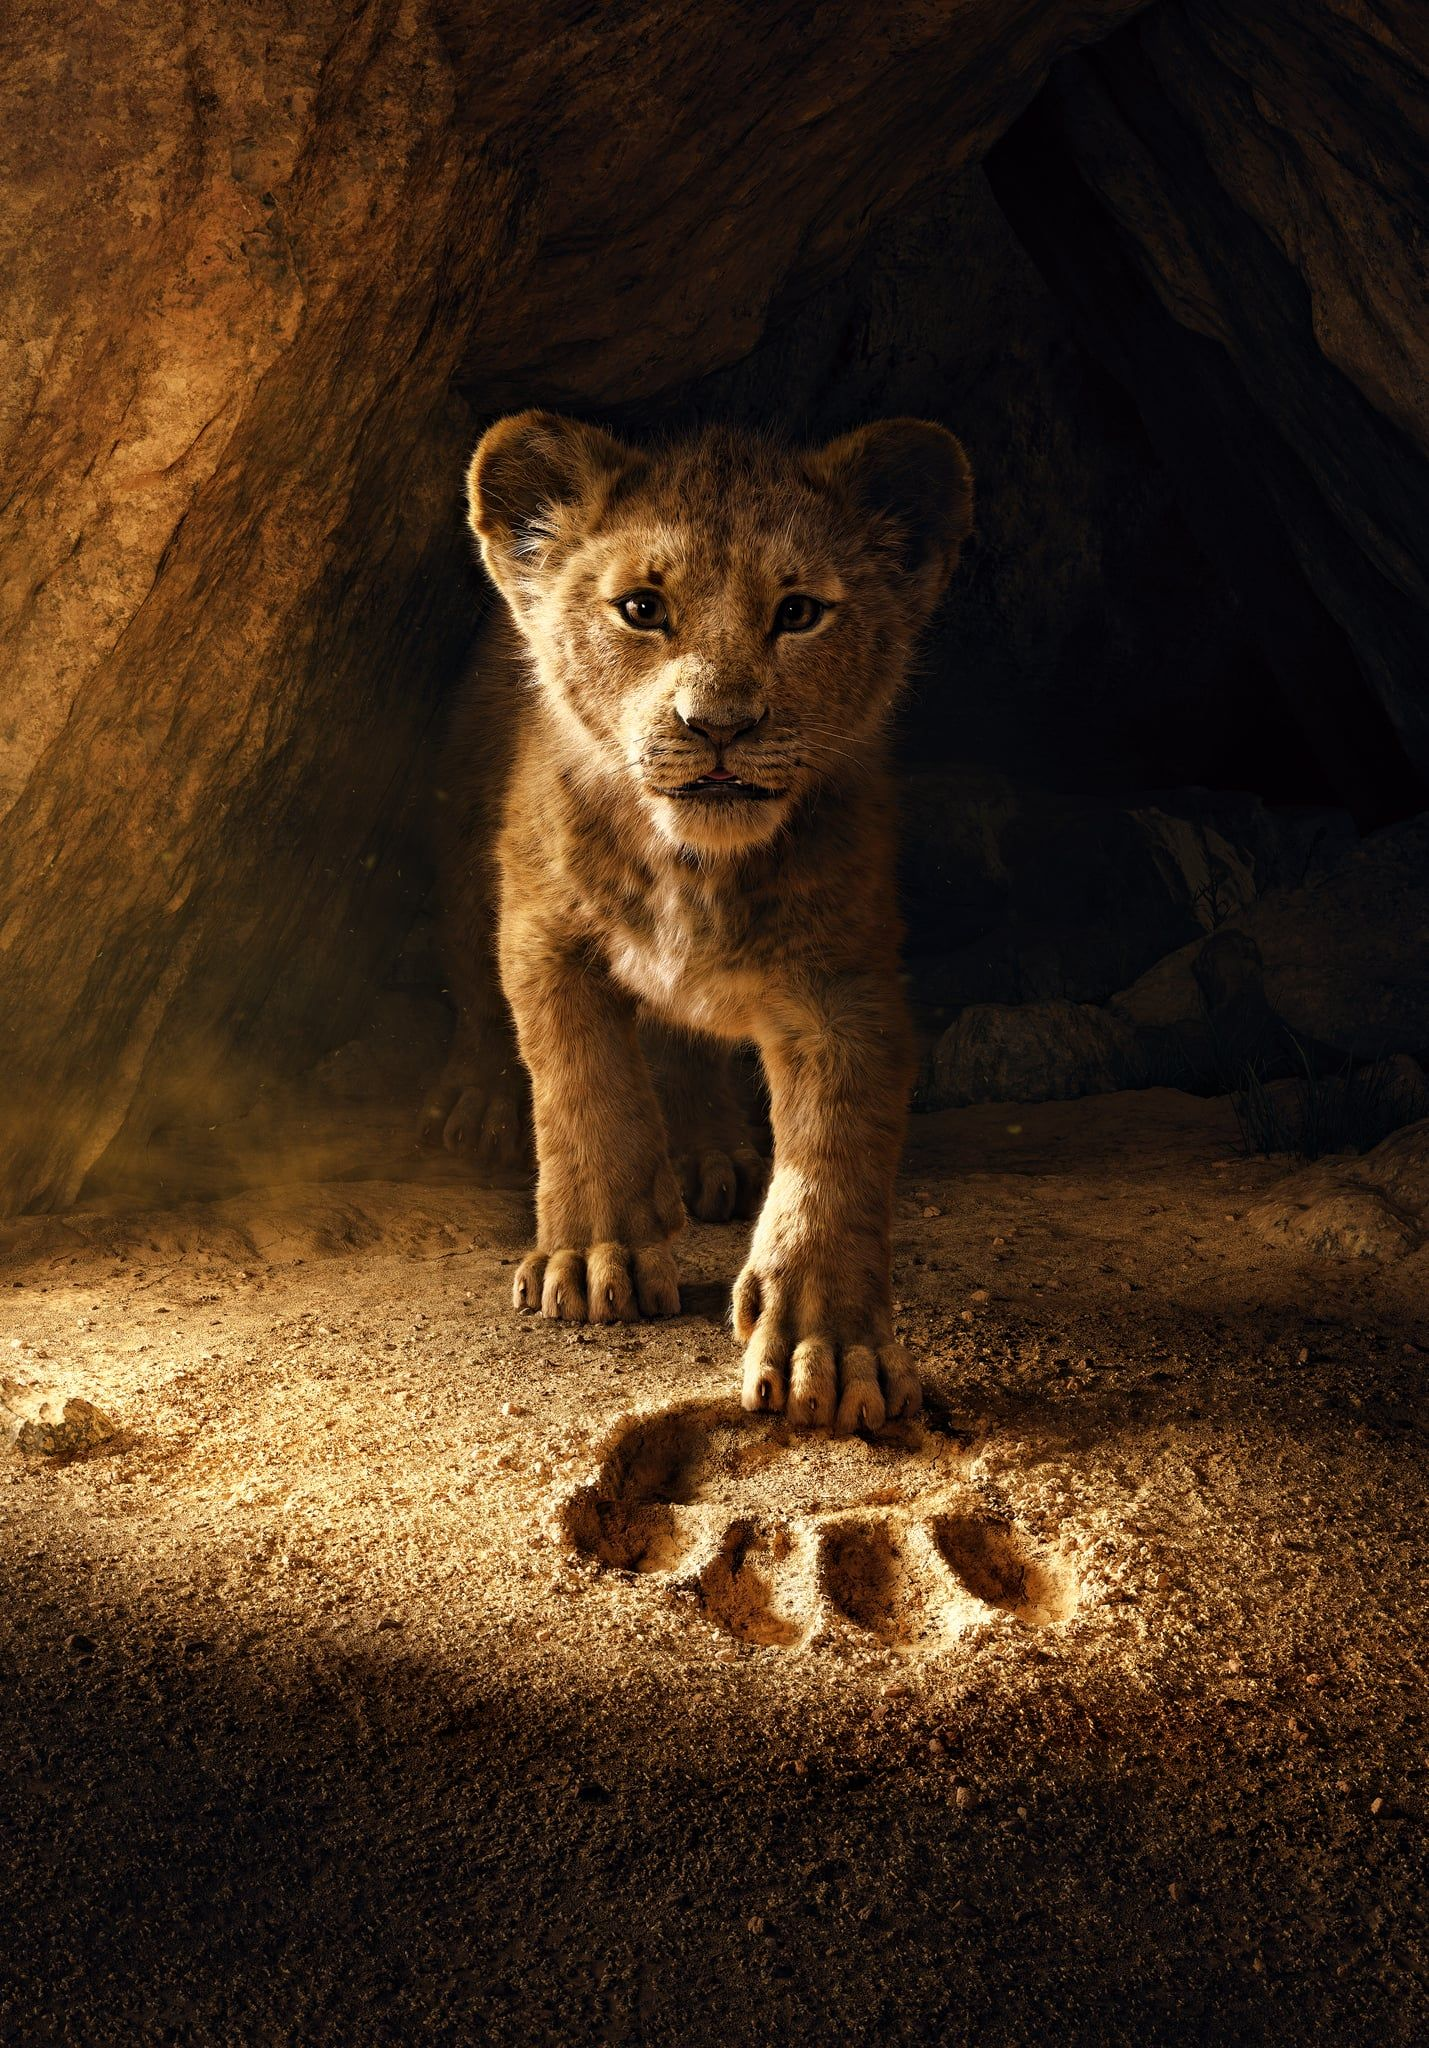 The Lion King 2019 Full Movie Online Free English Hd 720p 1080p